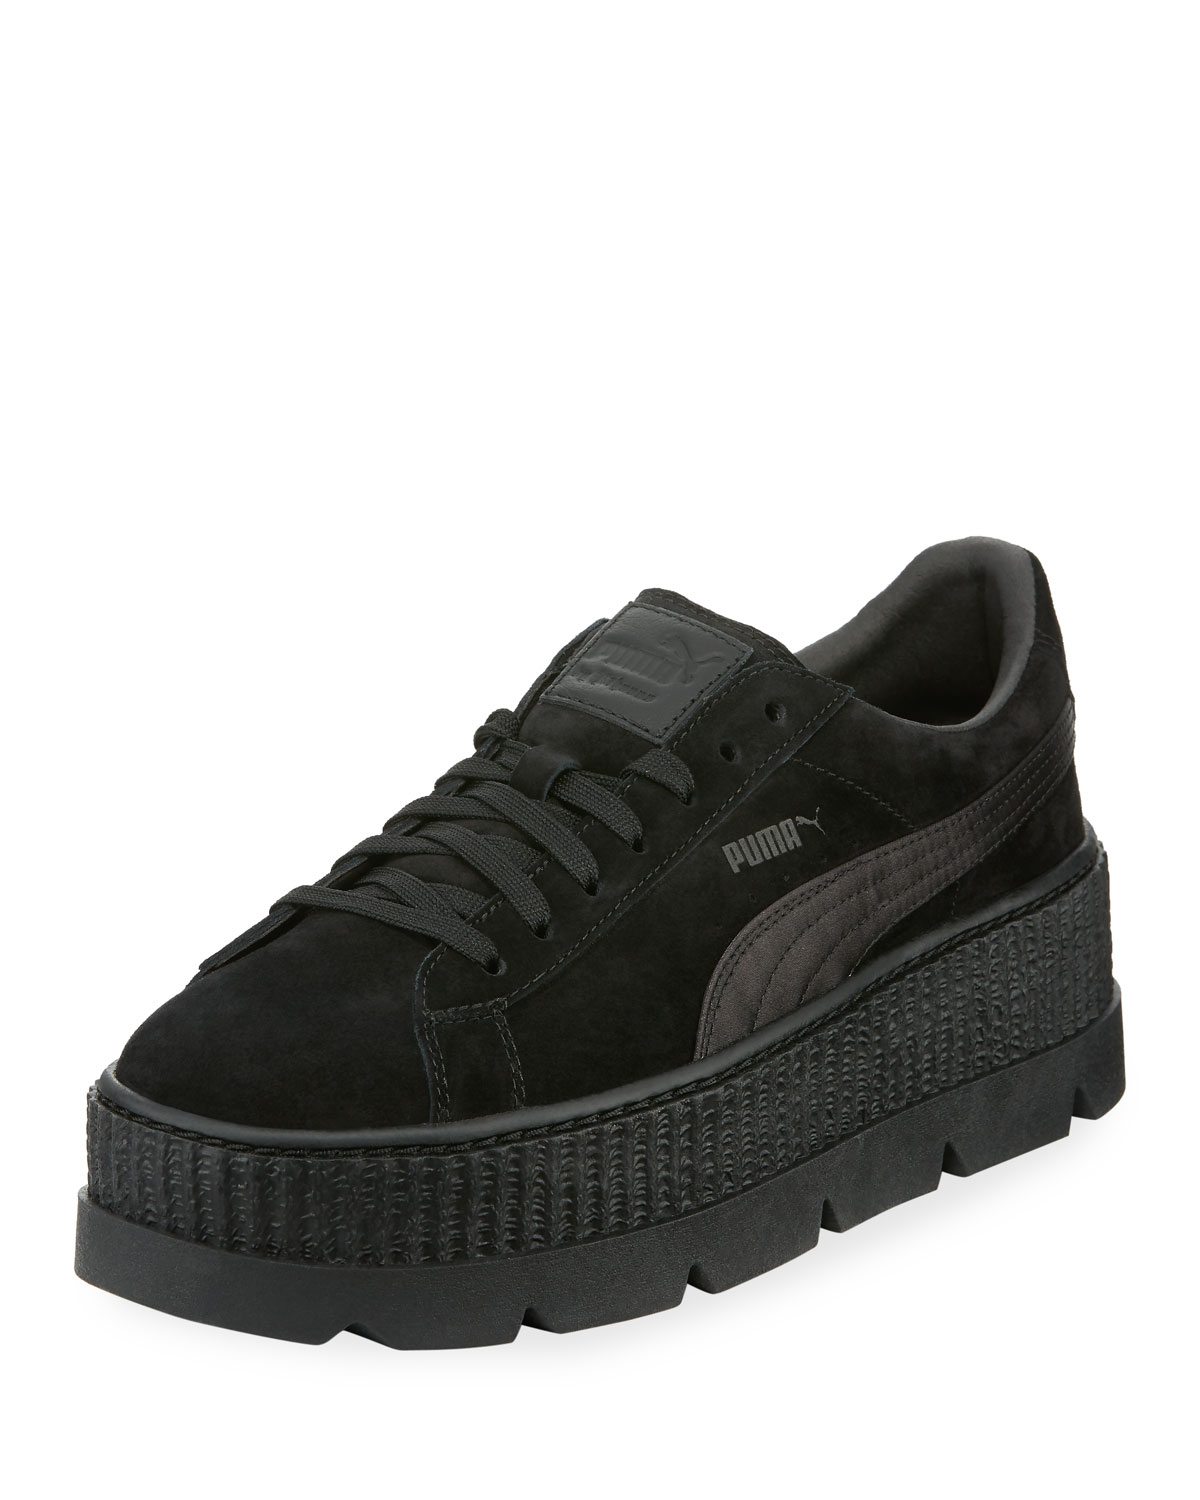 52632fc9219 Puma Low-Top Suede Cleated Creeper Sneaker